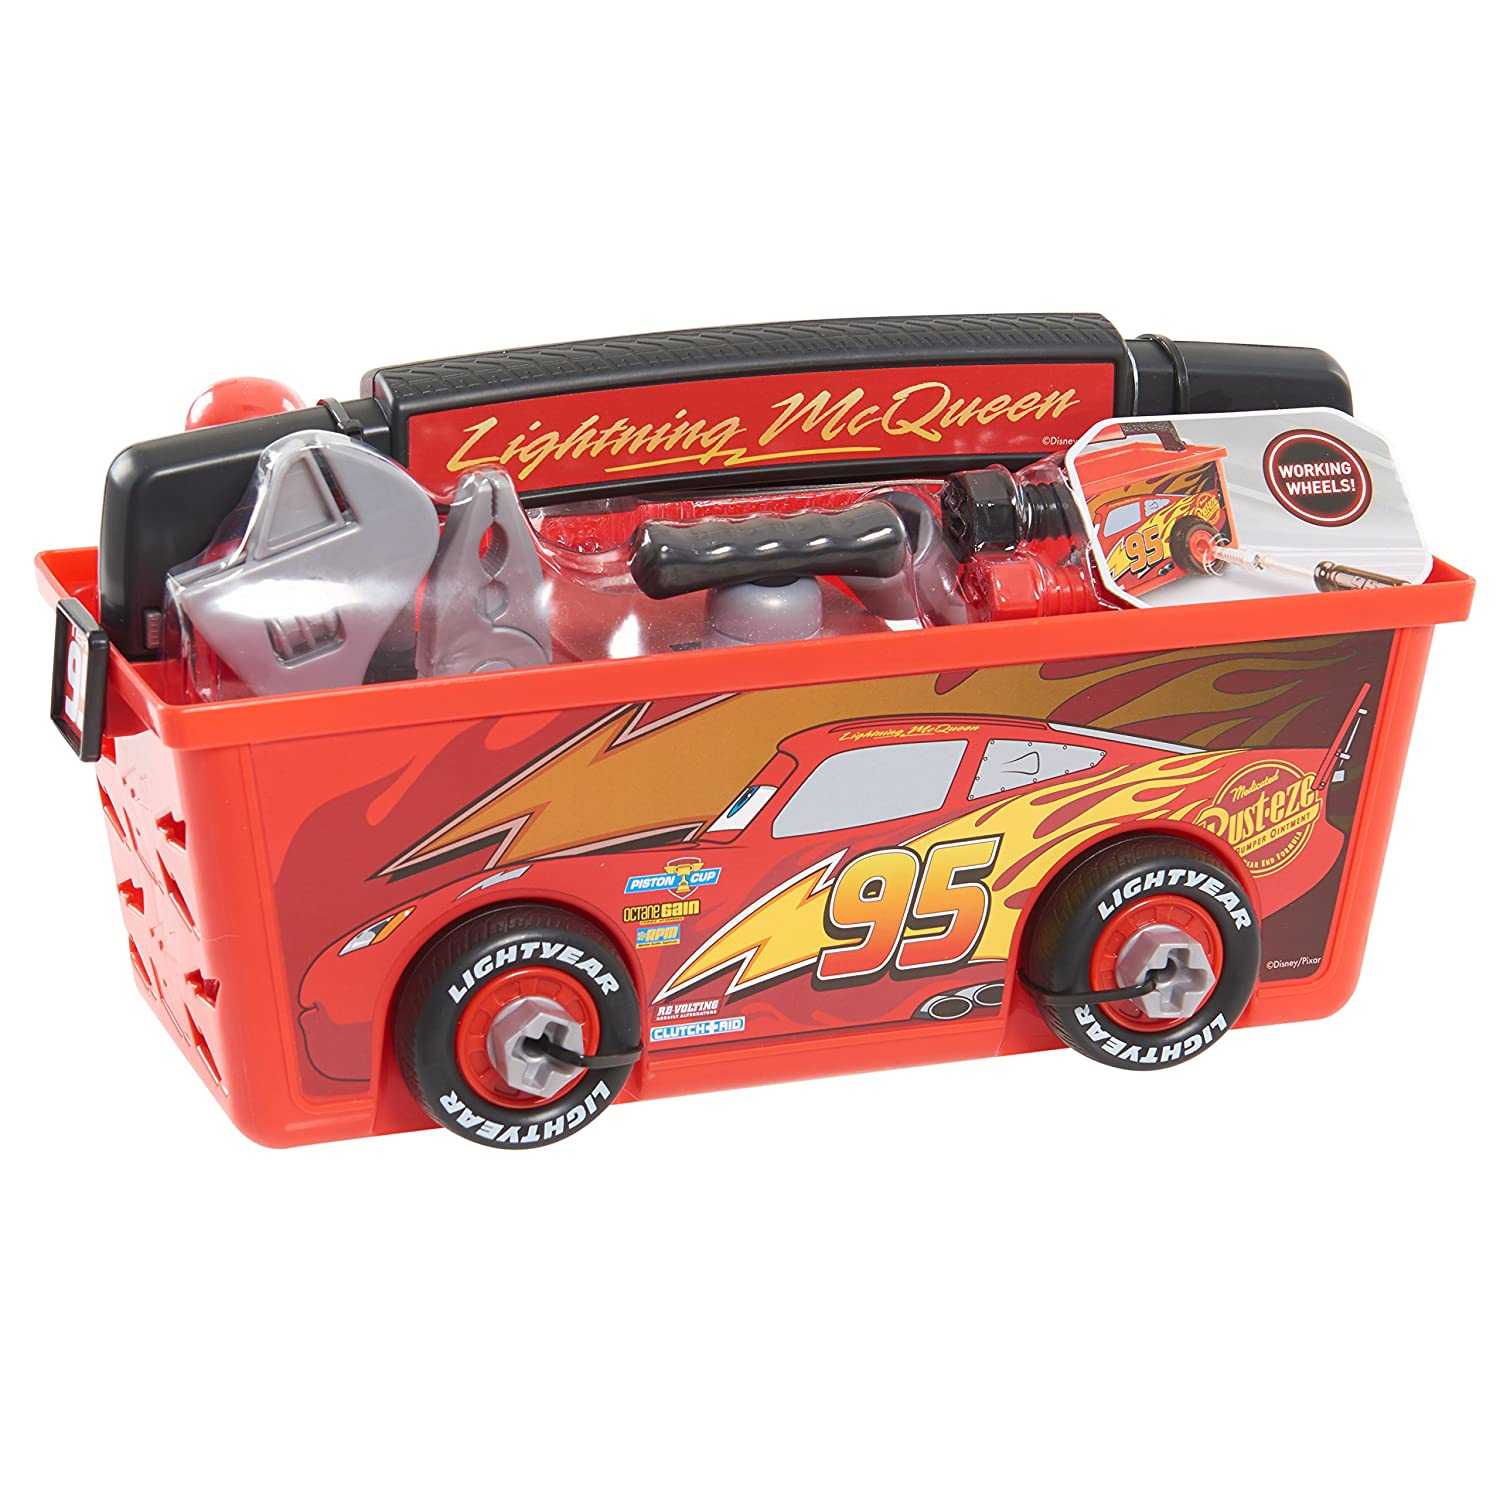 CARS 3 Quick Fix Tool Box Just Play 20015